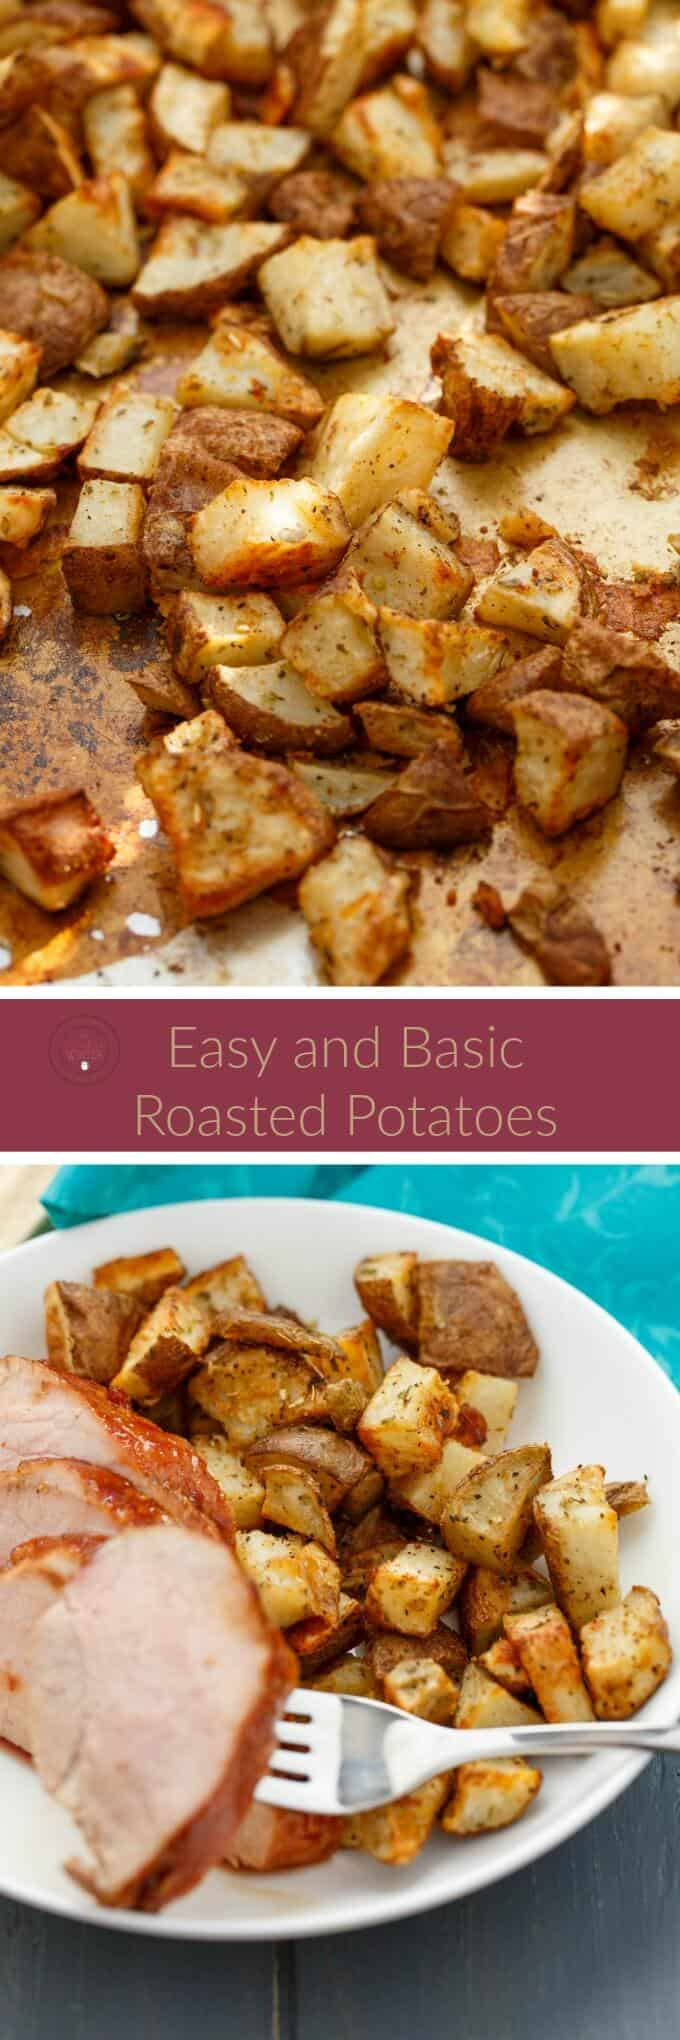 easy-and-basic-roasted-potatoes